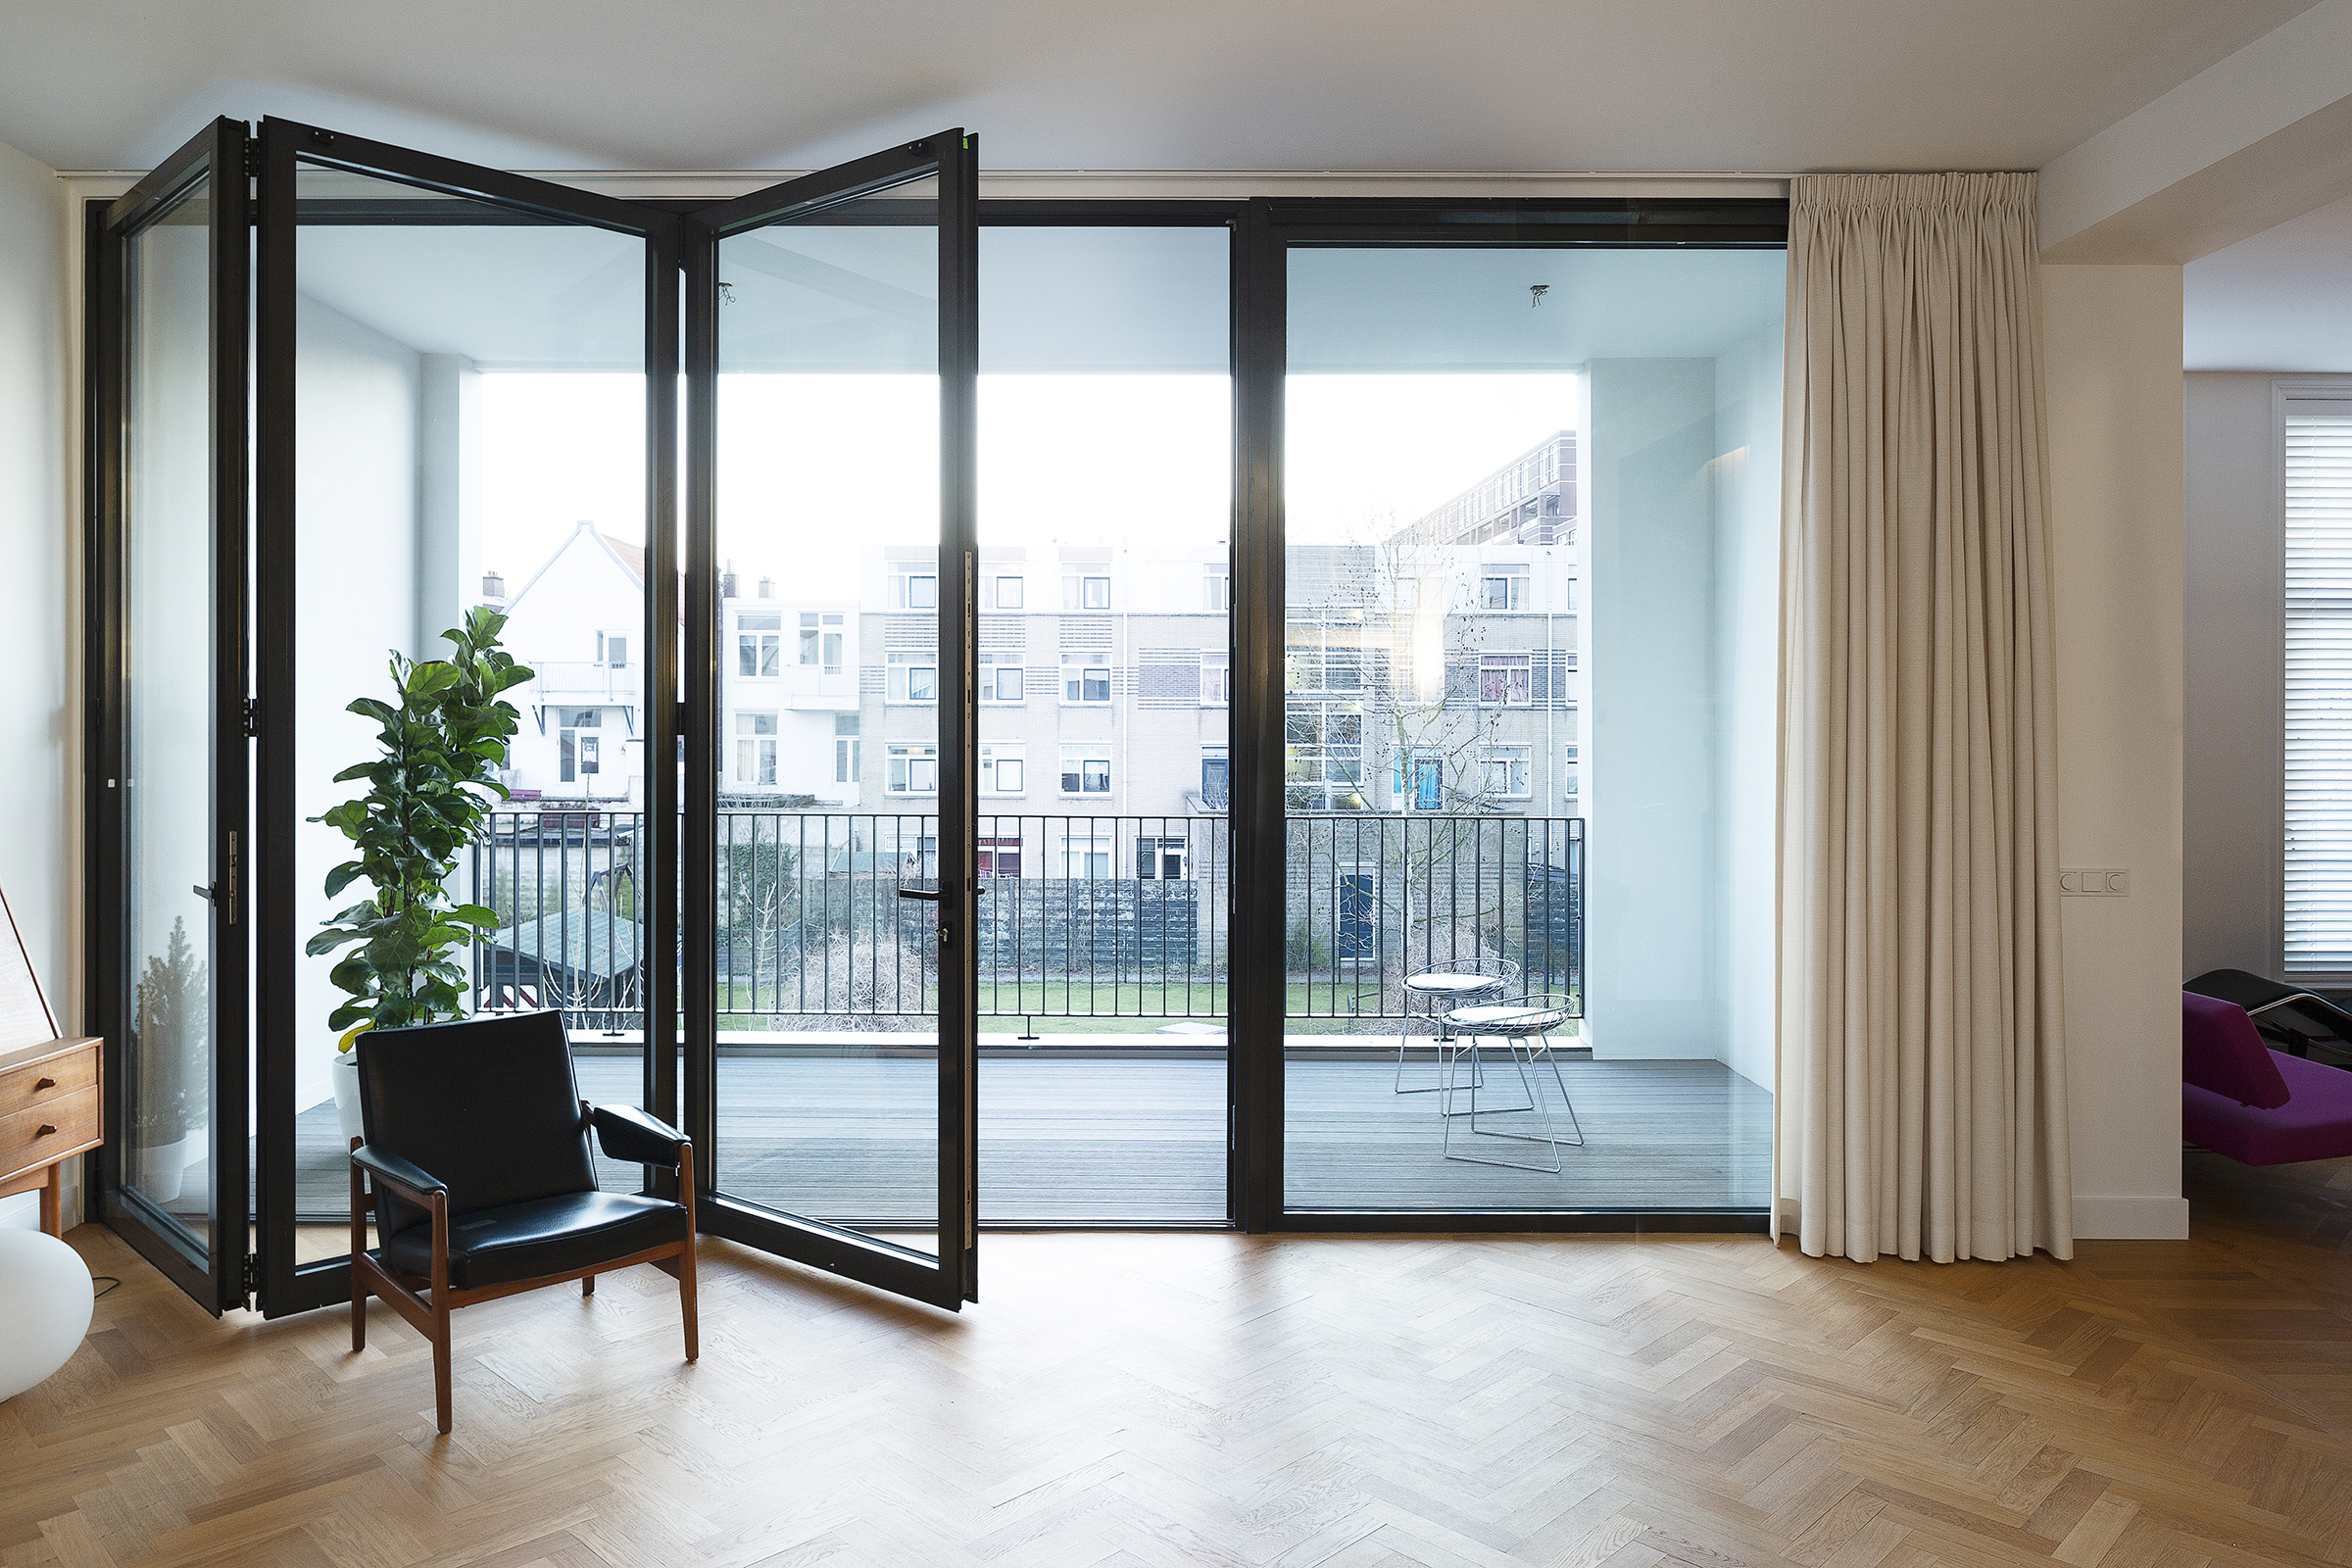 the large sliding doors connect the living room with the french balcony